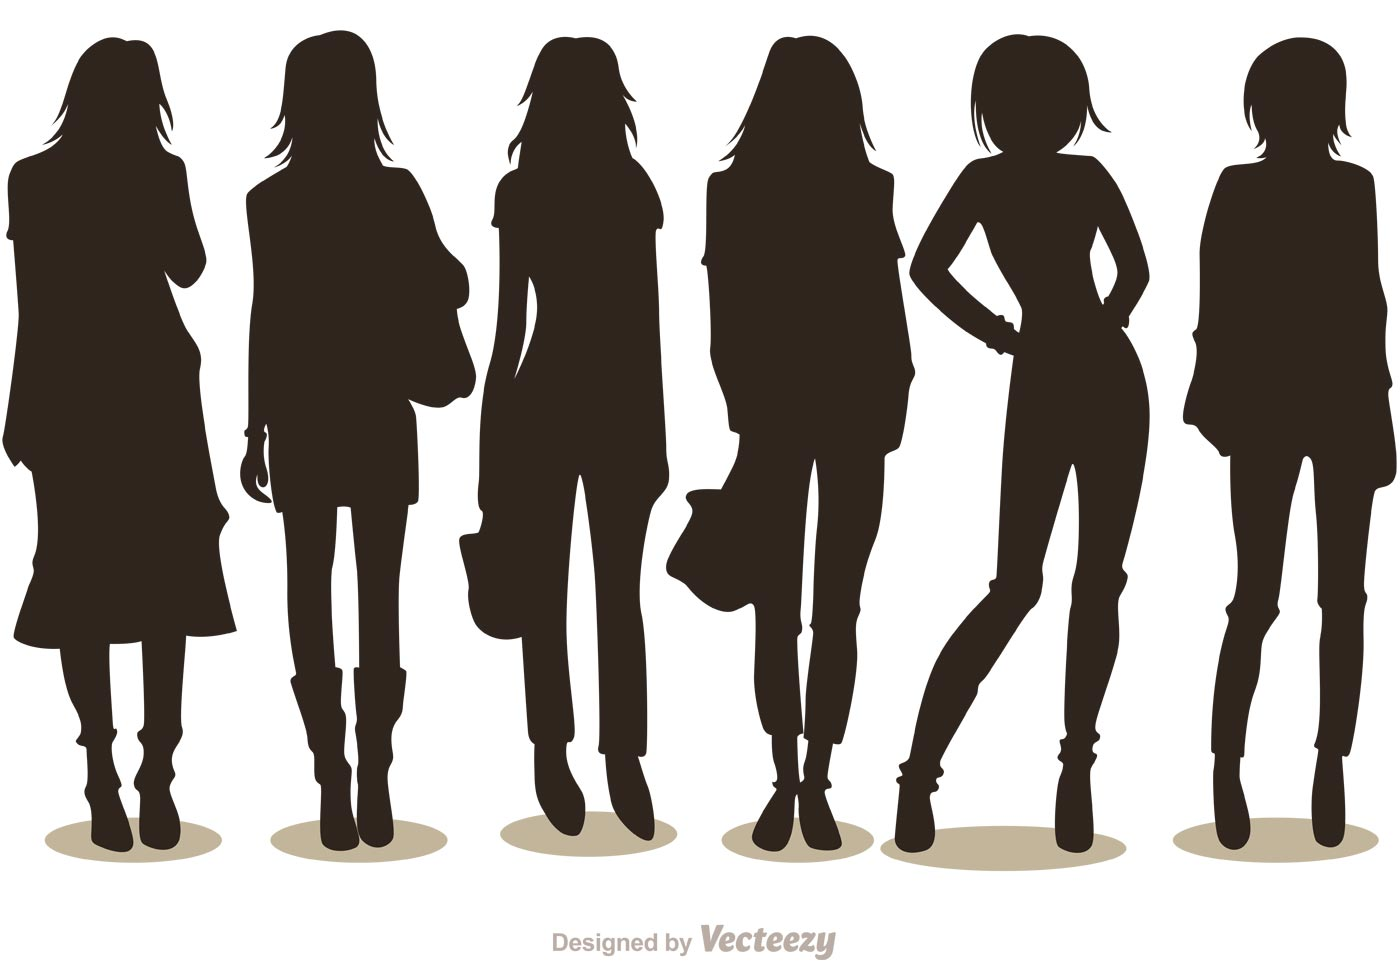 Silhouette Fashion Girl Vectors Pack 1 - Download Free ...